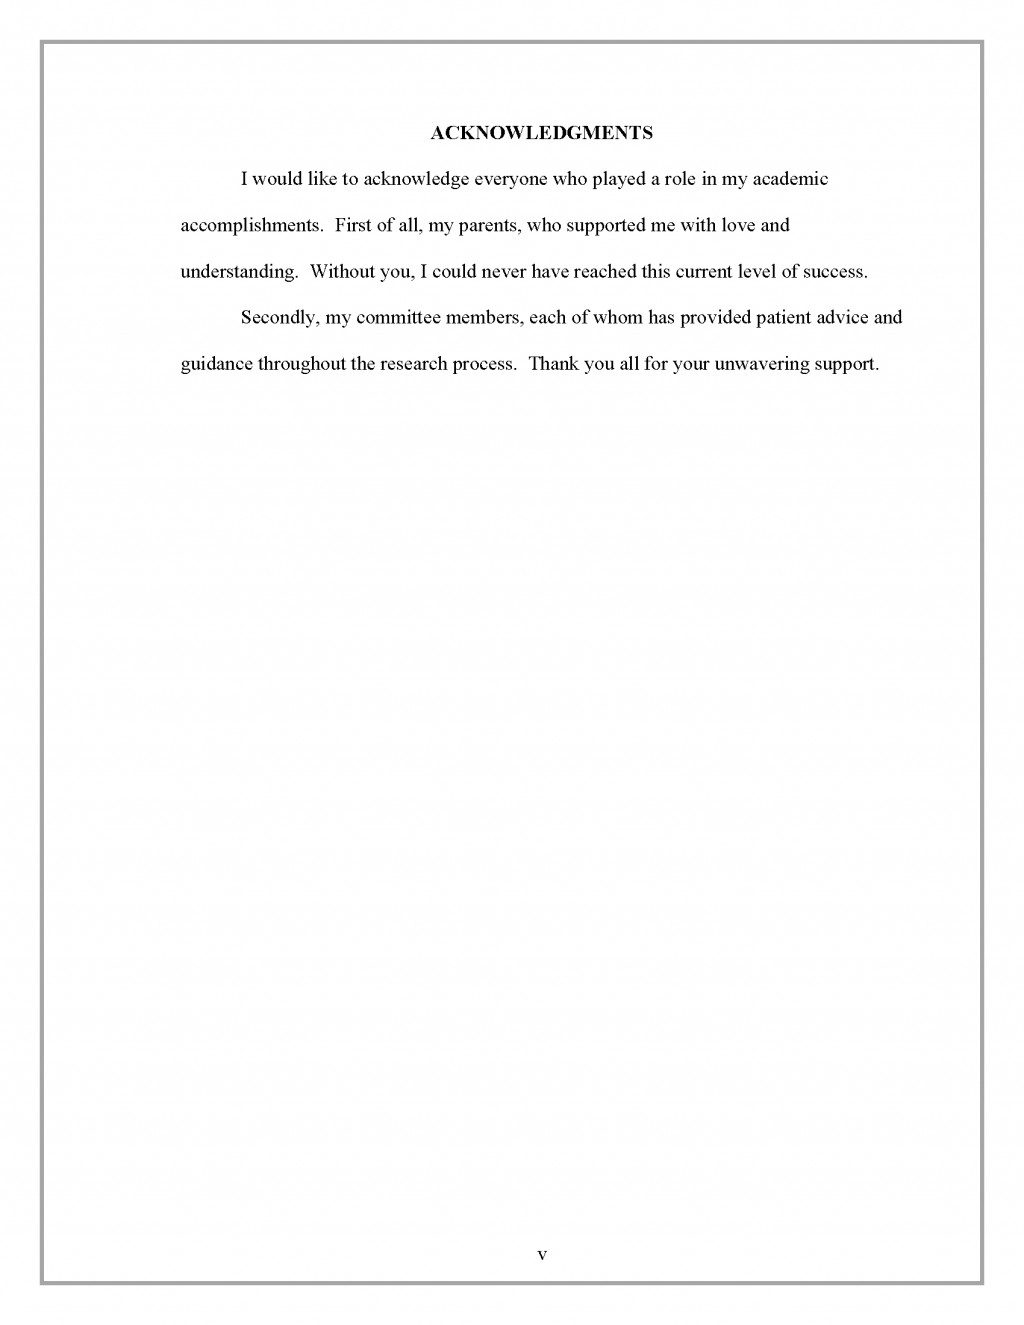 004 Acknowledgment Border Research Paper How To Write Acknowledgement In Rare Examples Large